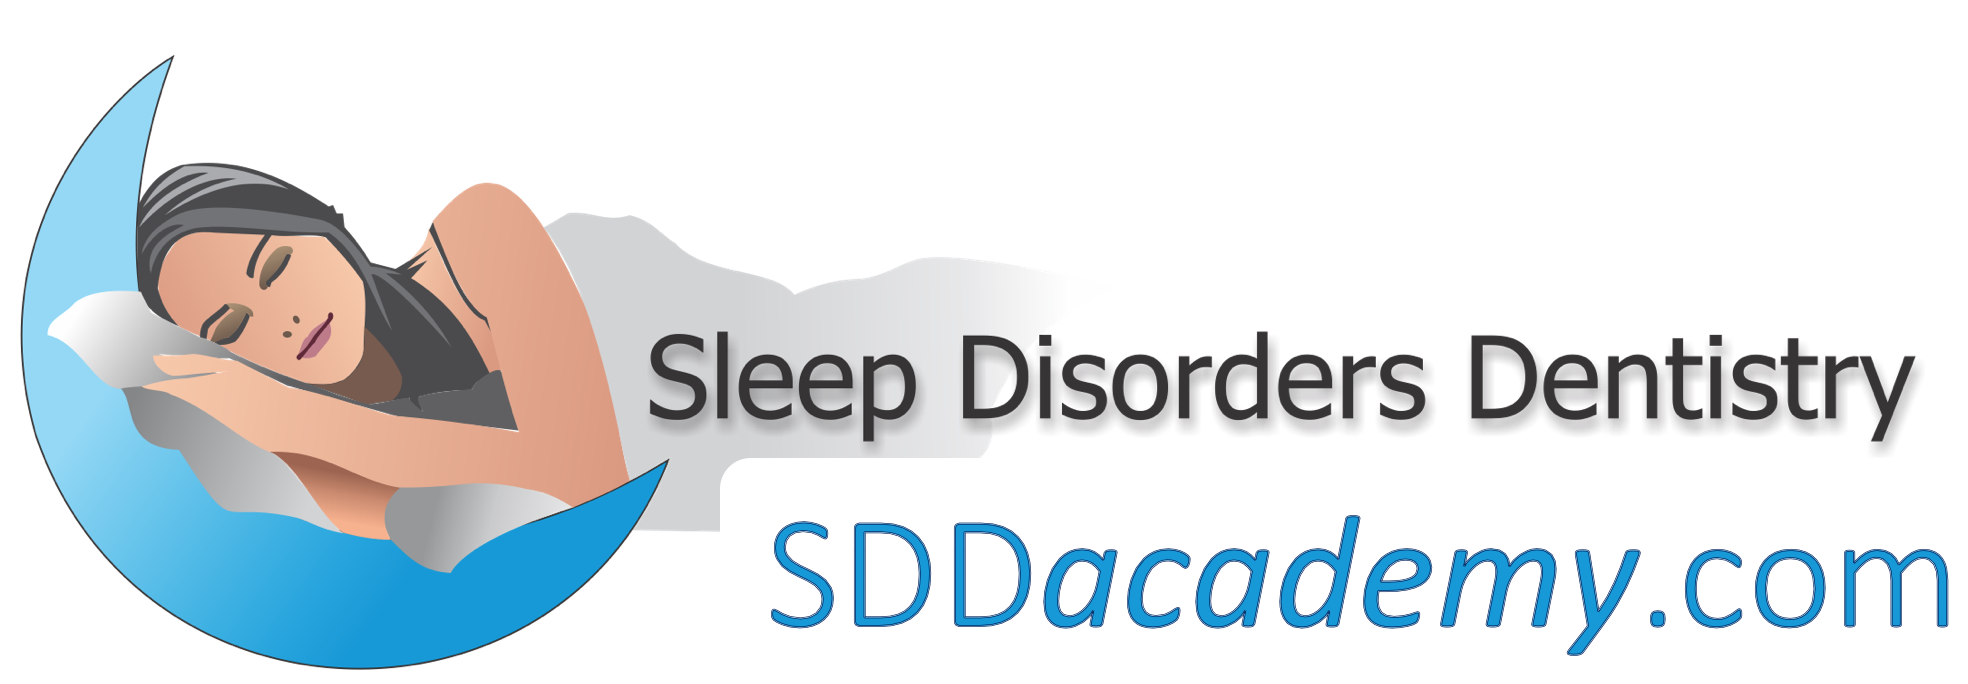 Sleep Disorders Dentistry CE